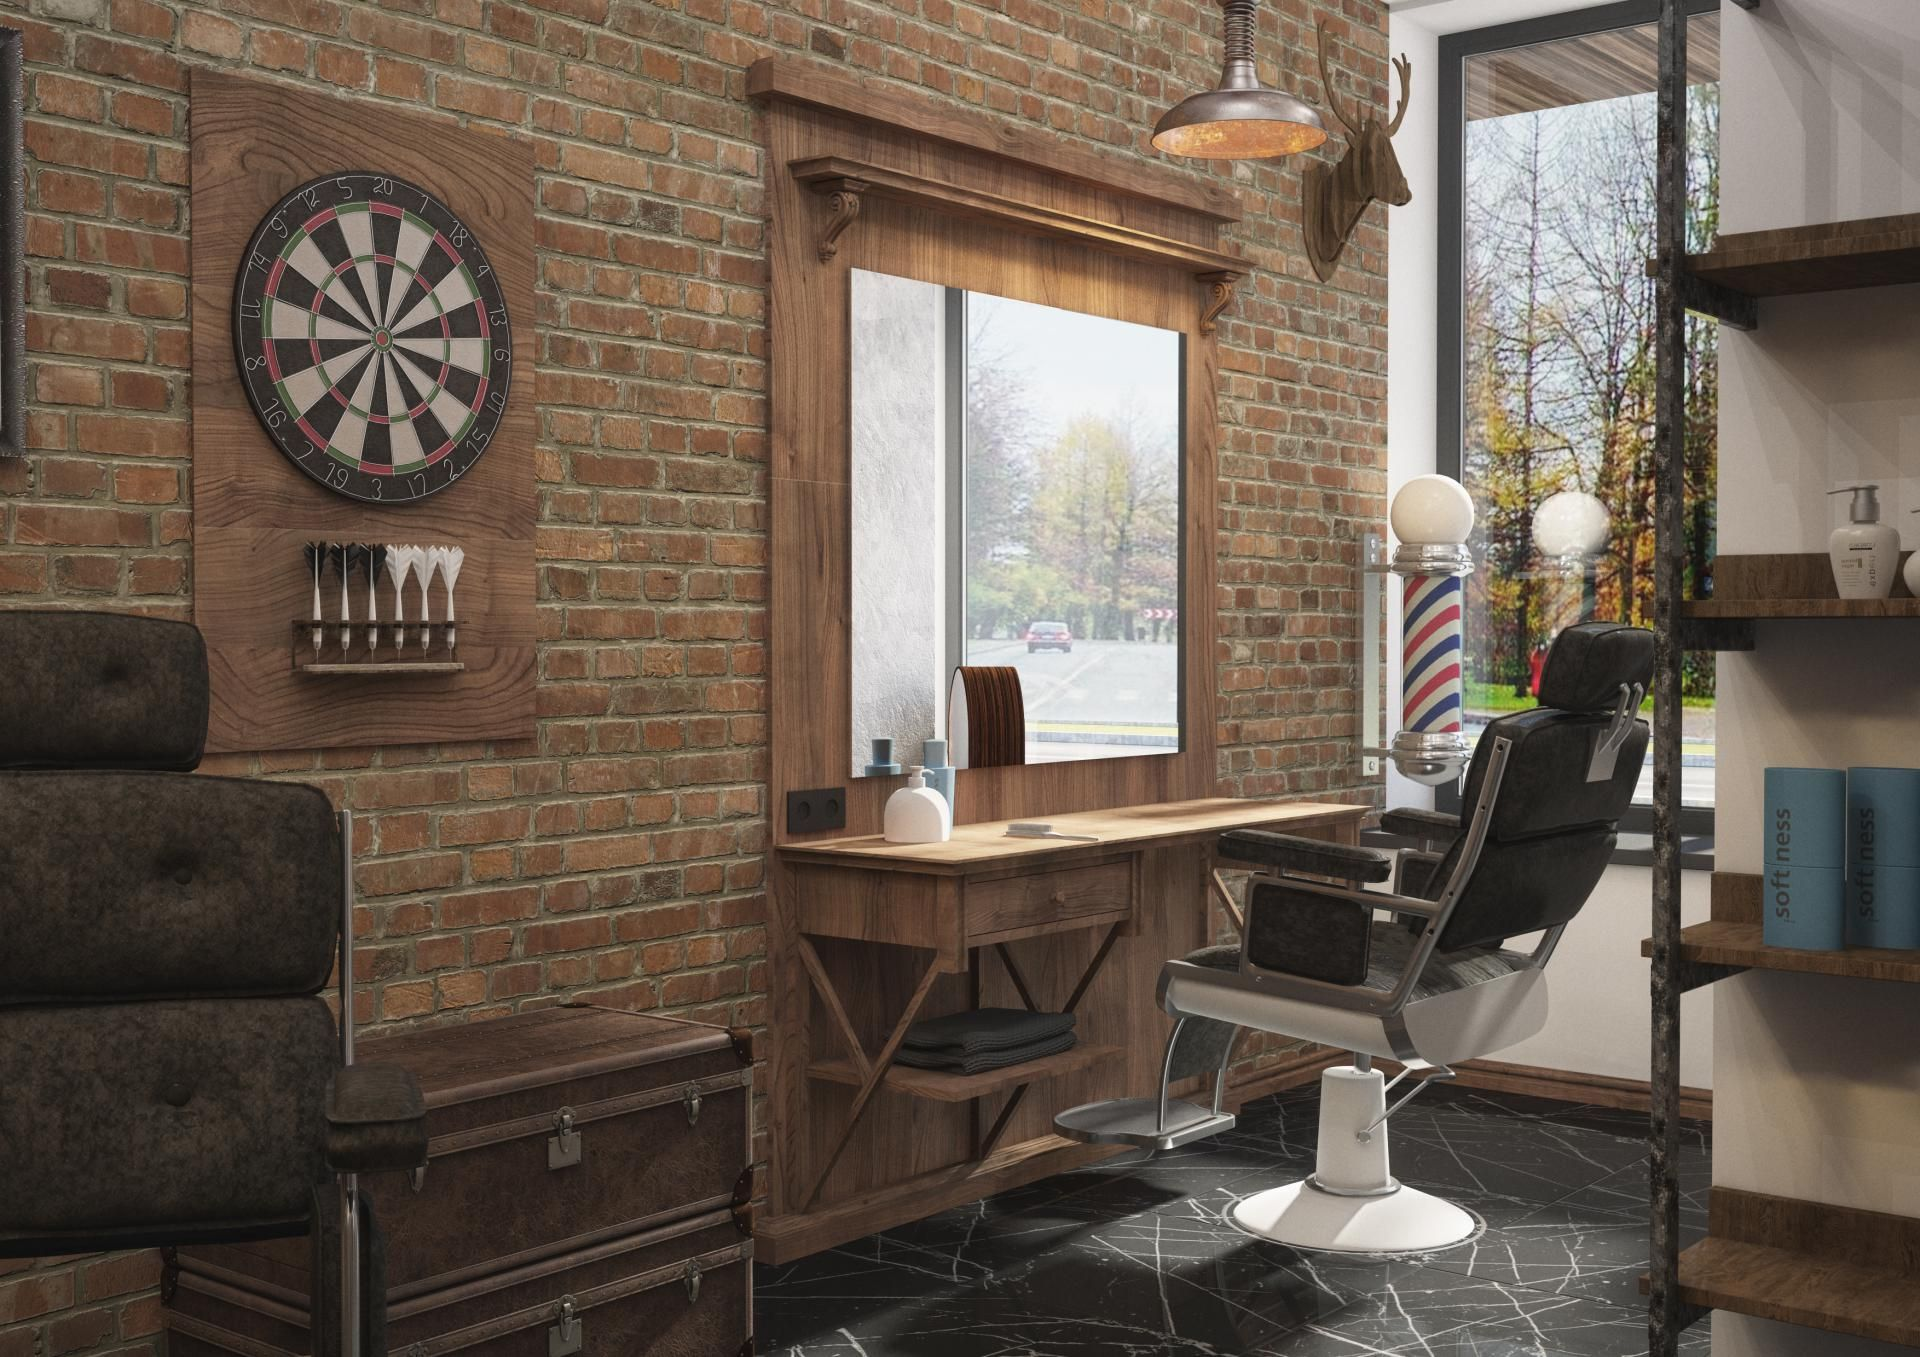 Winchester barber shop by grafit architects bureau for Winchester architects